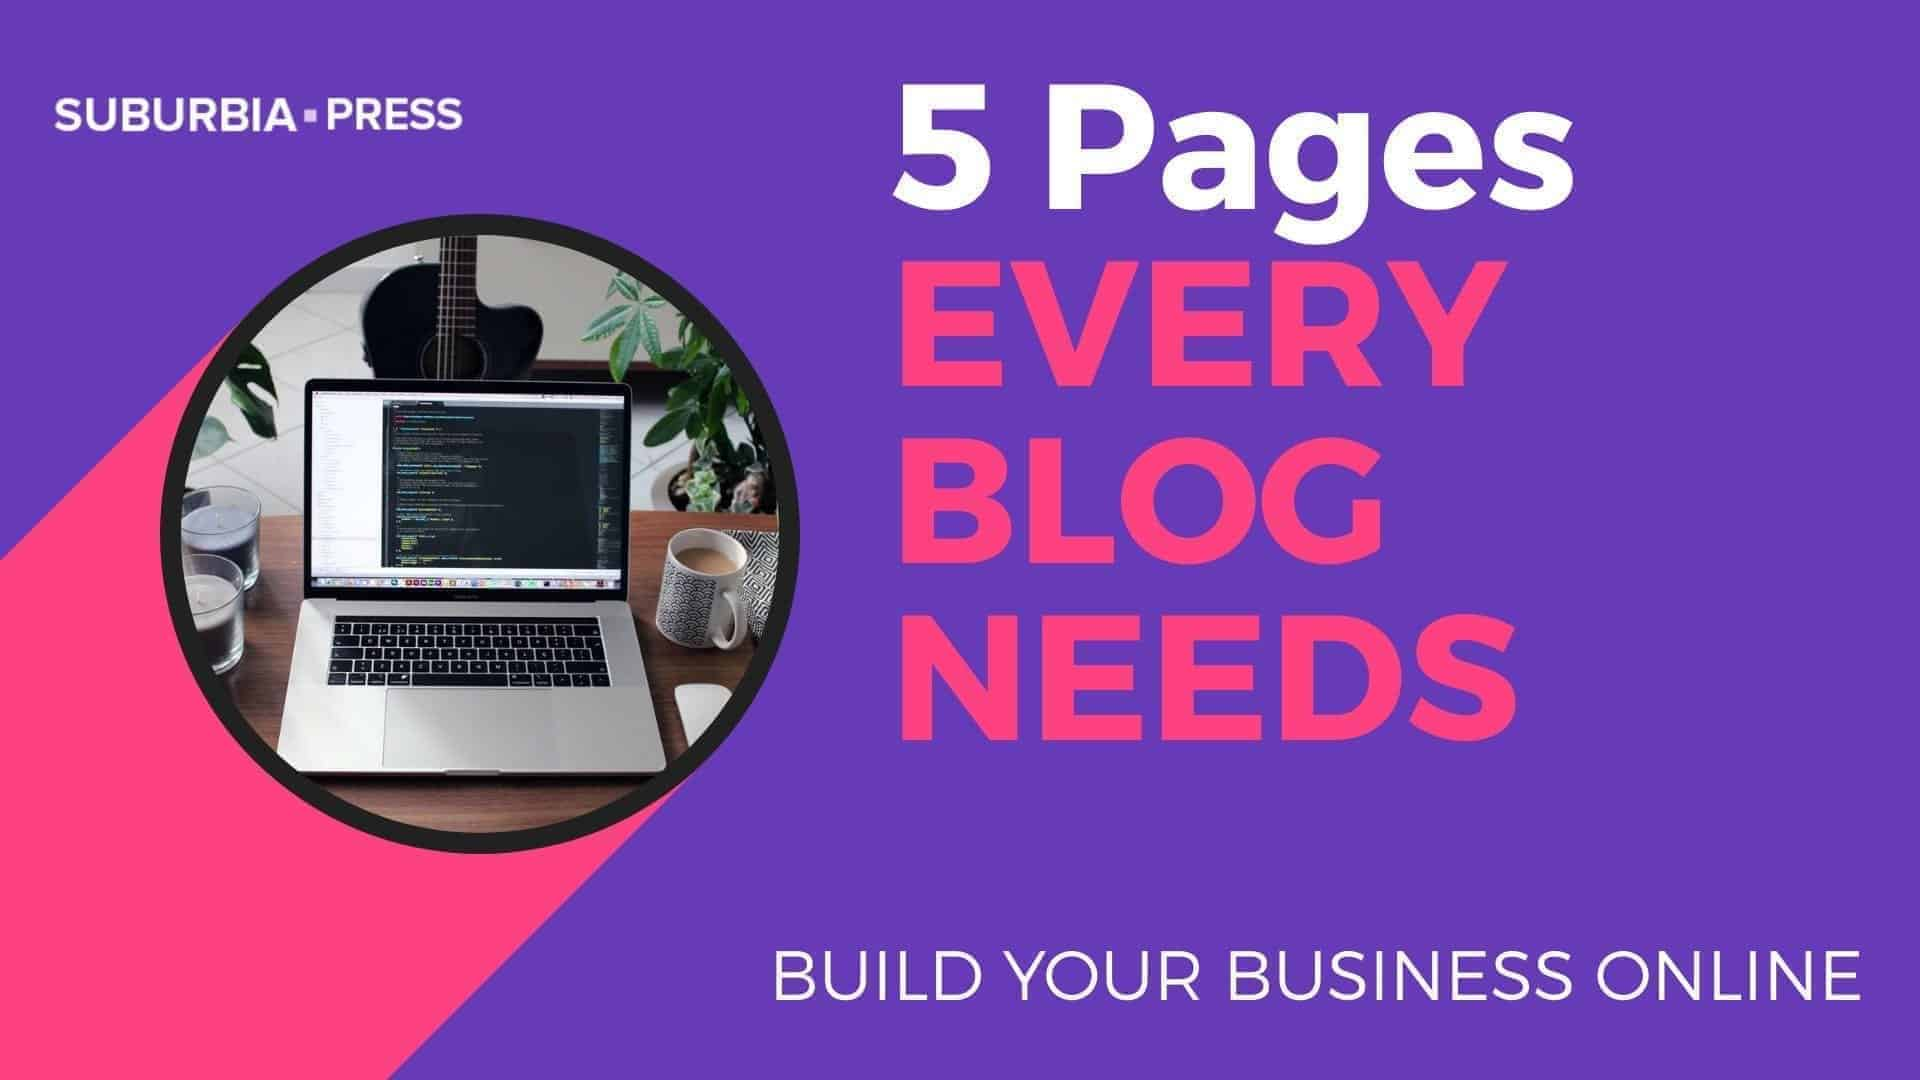 5 Pages Every Blog Needs